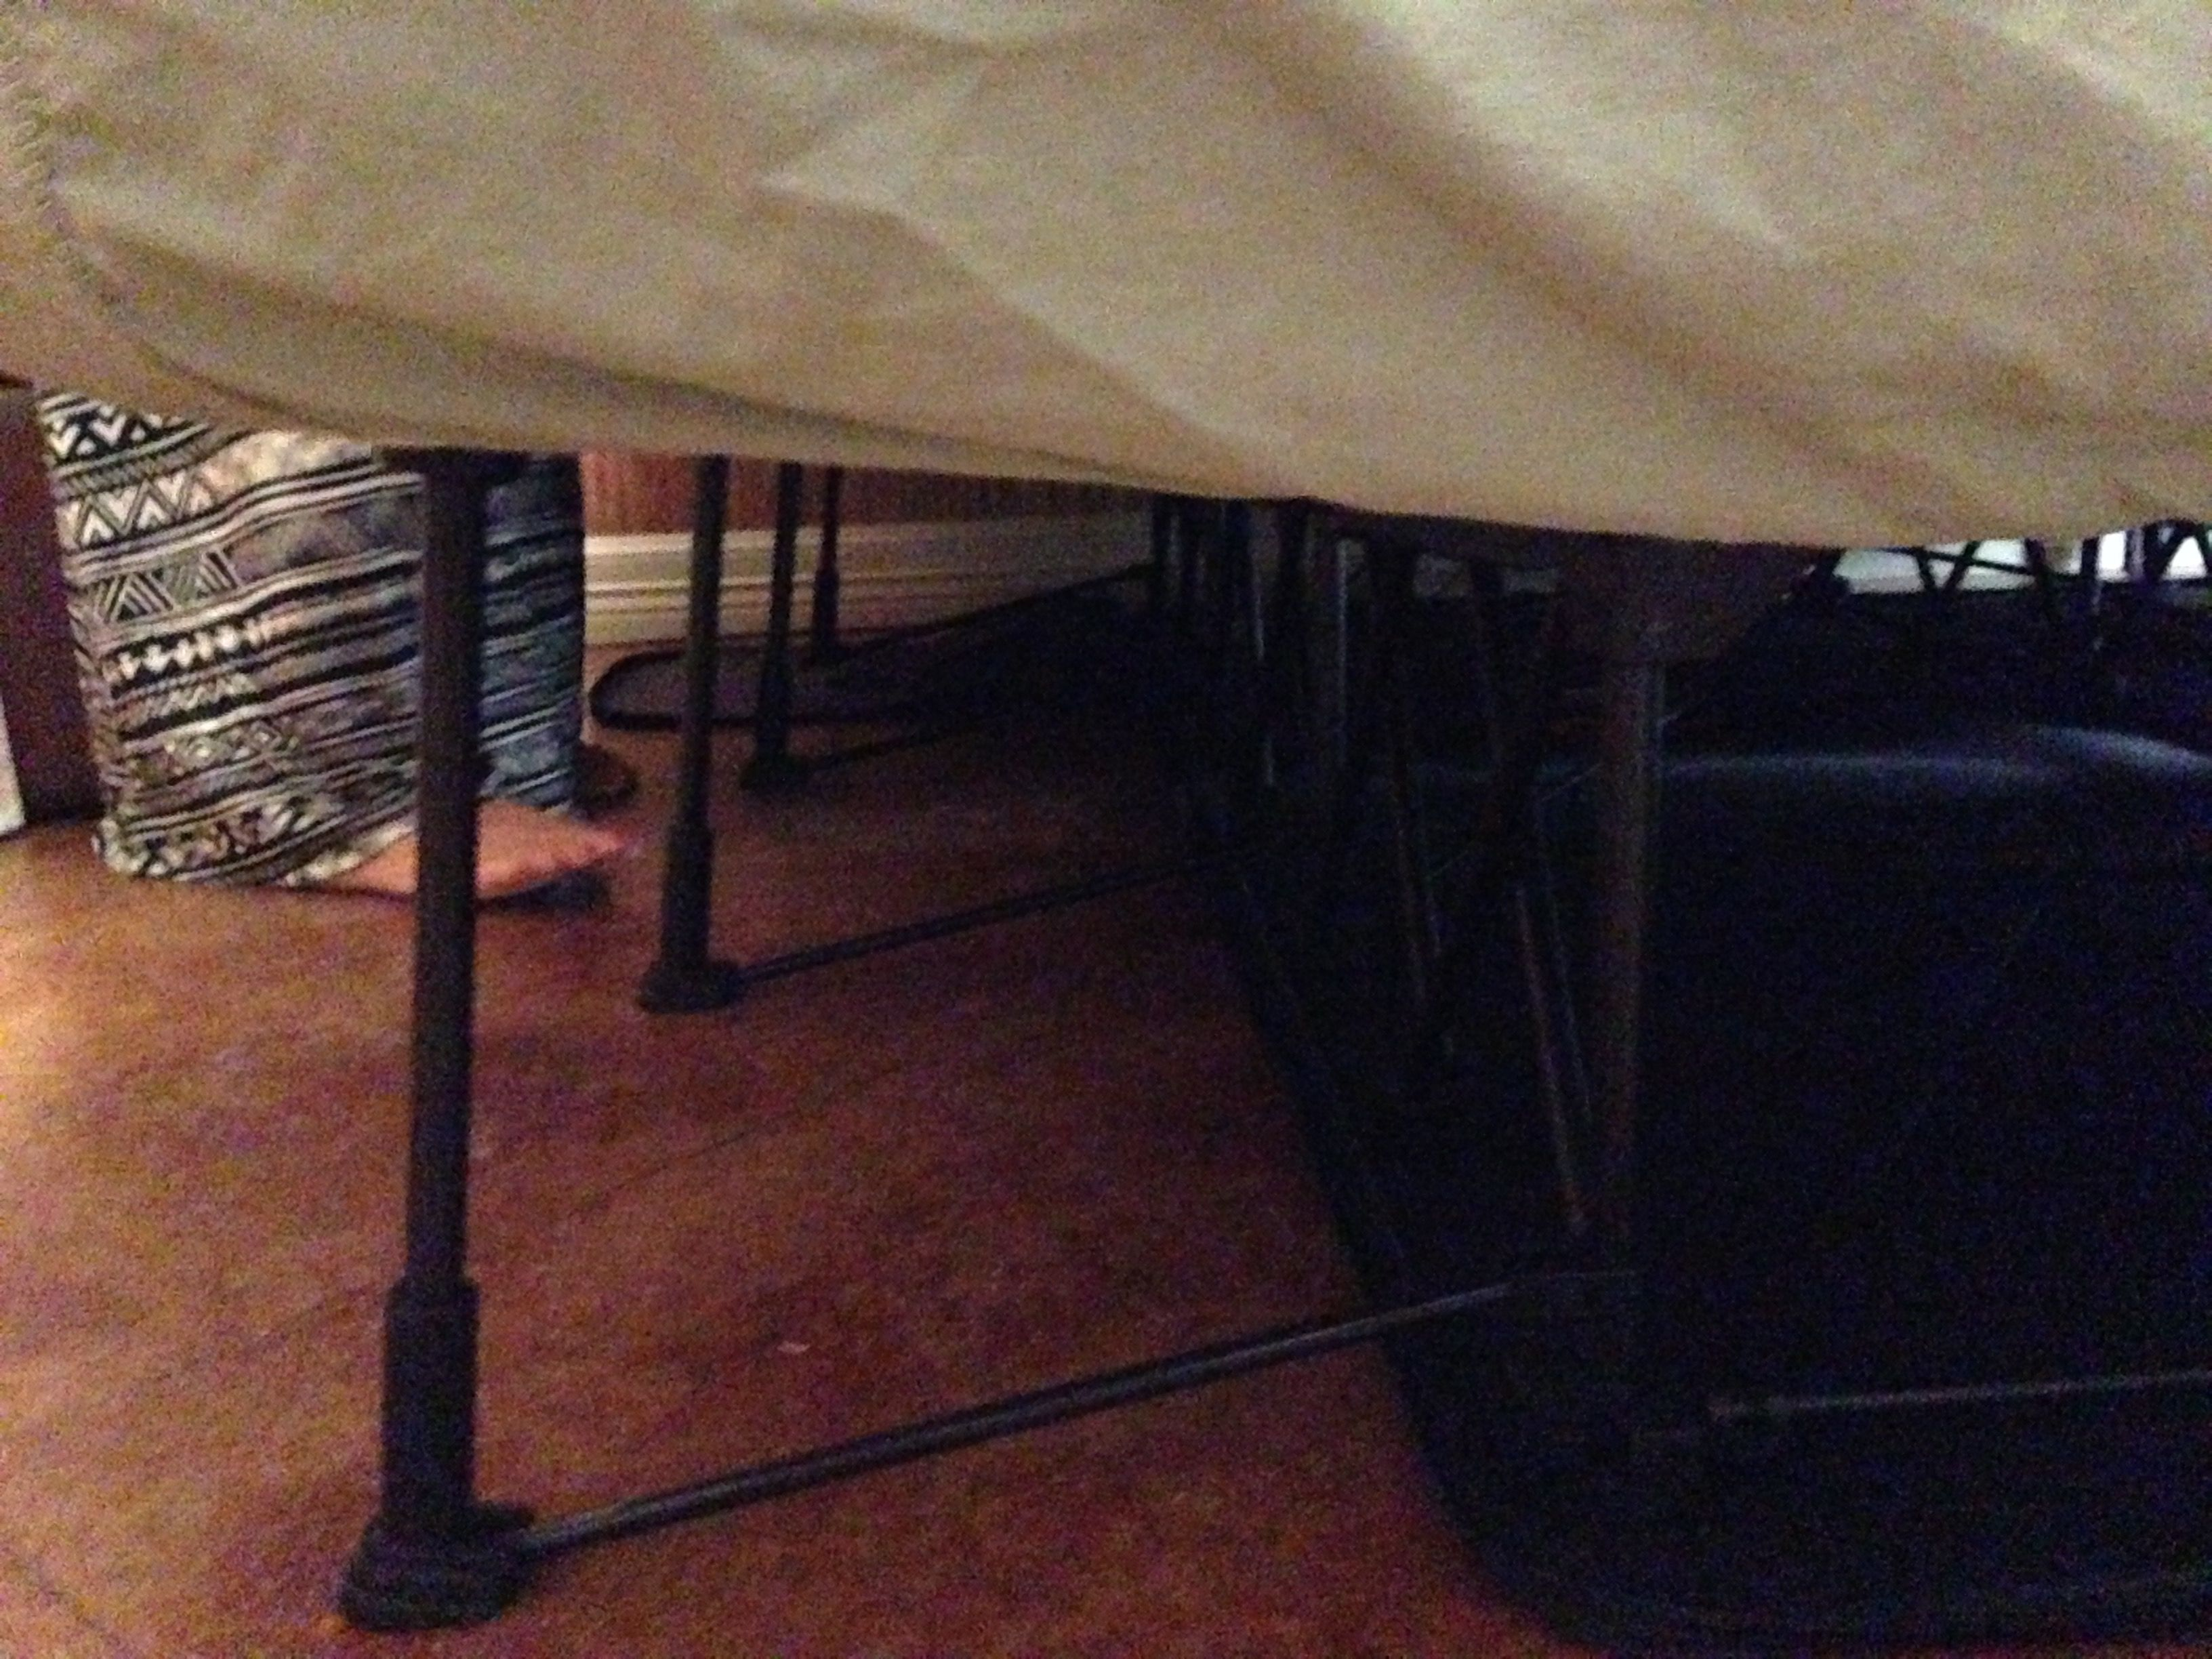 Fold up blowup mattress on stand from front gate